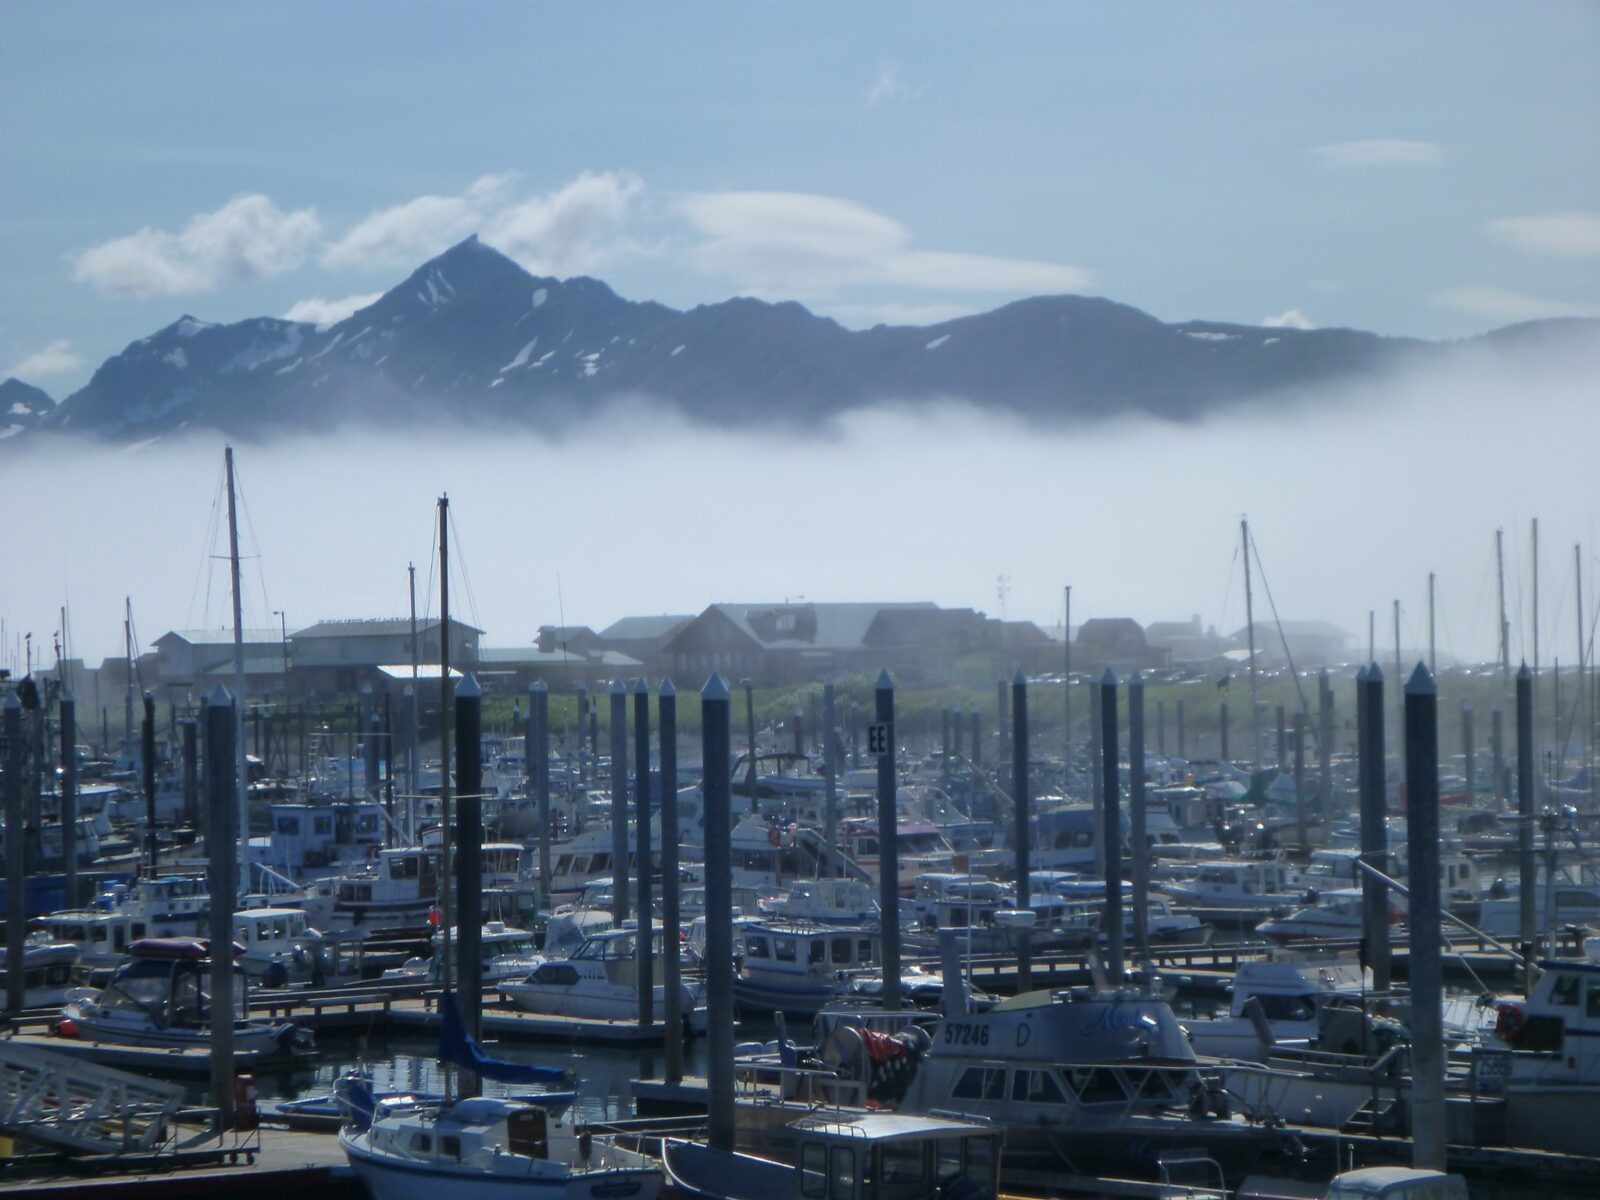 The Homer small boat harbor with many pleasure and fishing boats tied up at the docks. There are low buildings behind the harbor and low fog over the water. Above the fog mountains are rising up